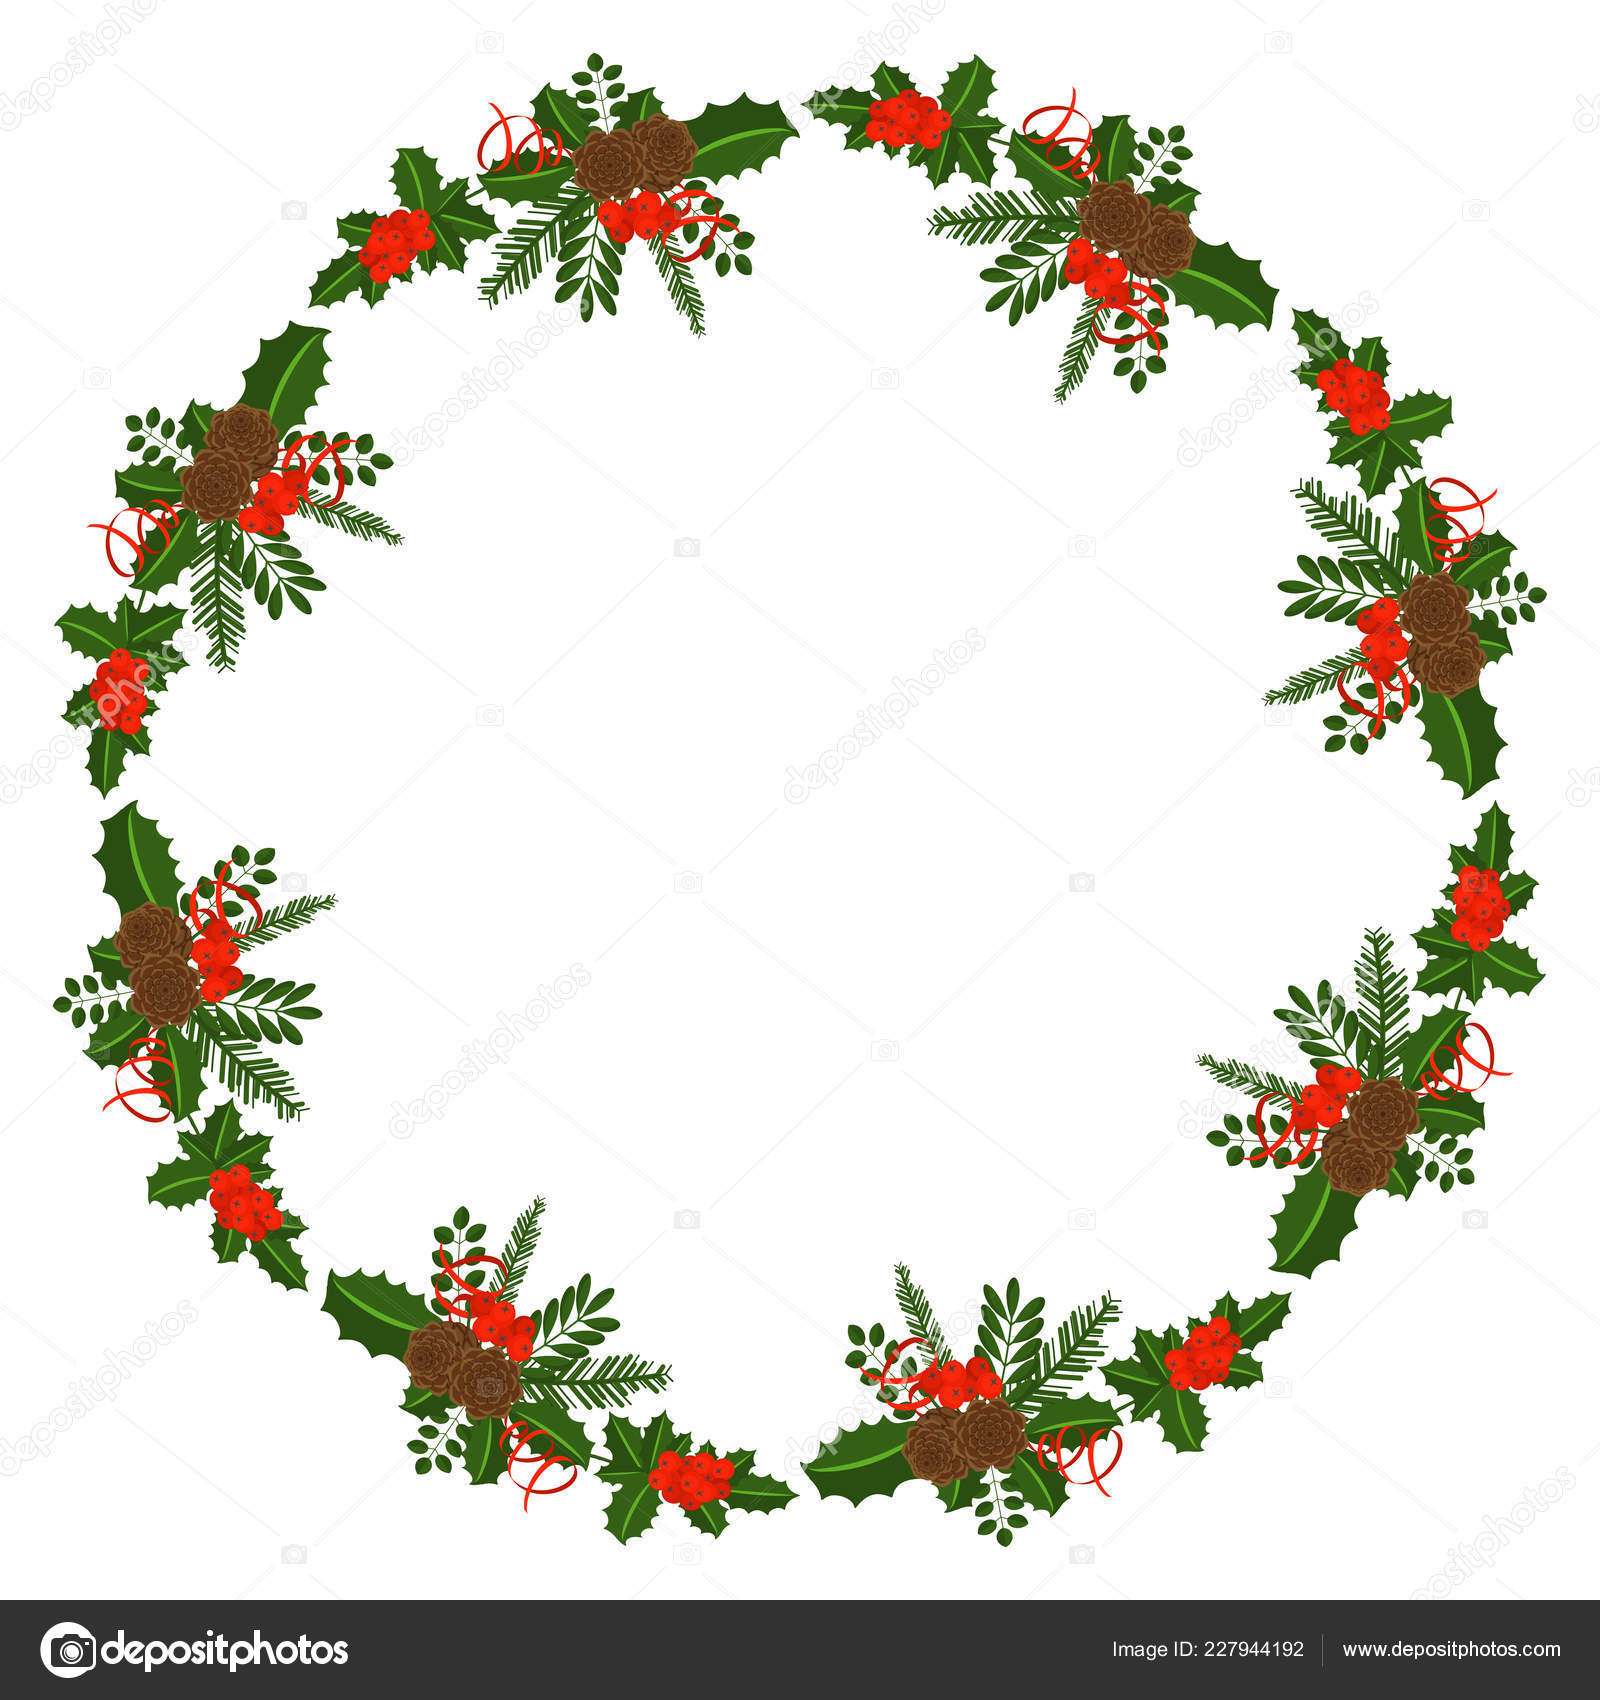 Christmas Card Border.Holly Berry Round Border For Christmas Cards Stock Vector